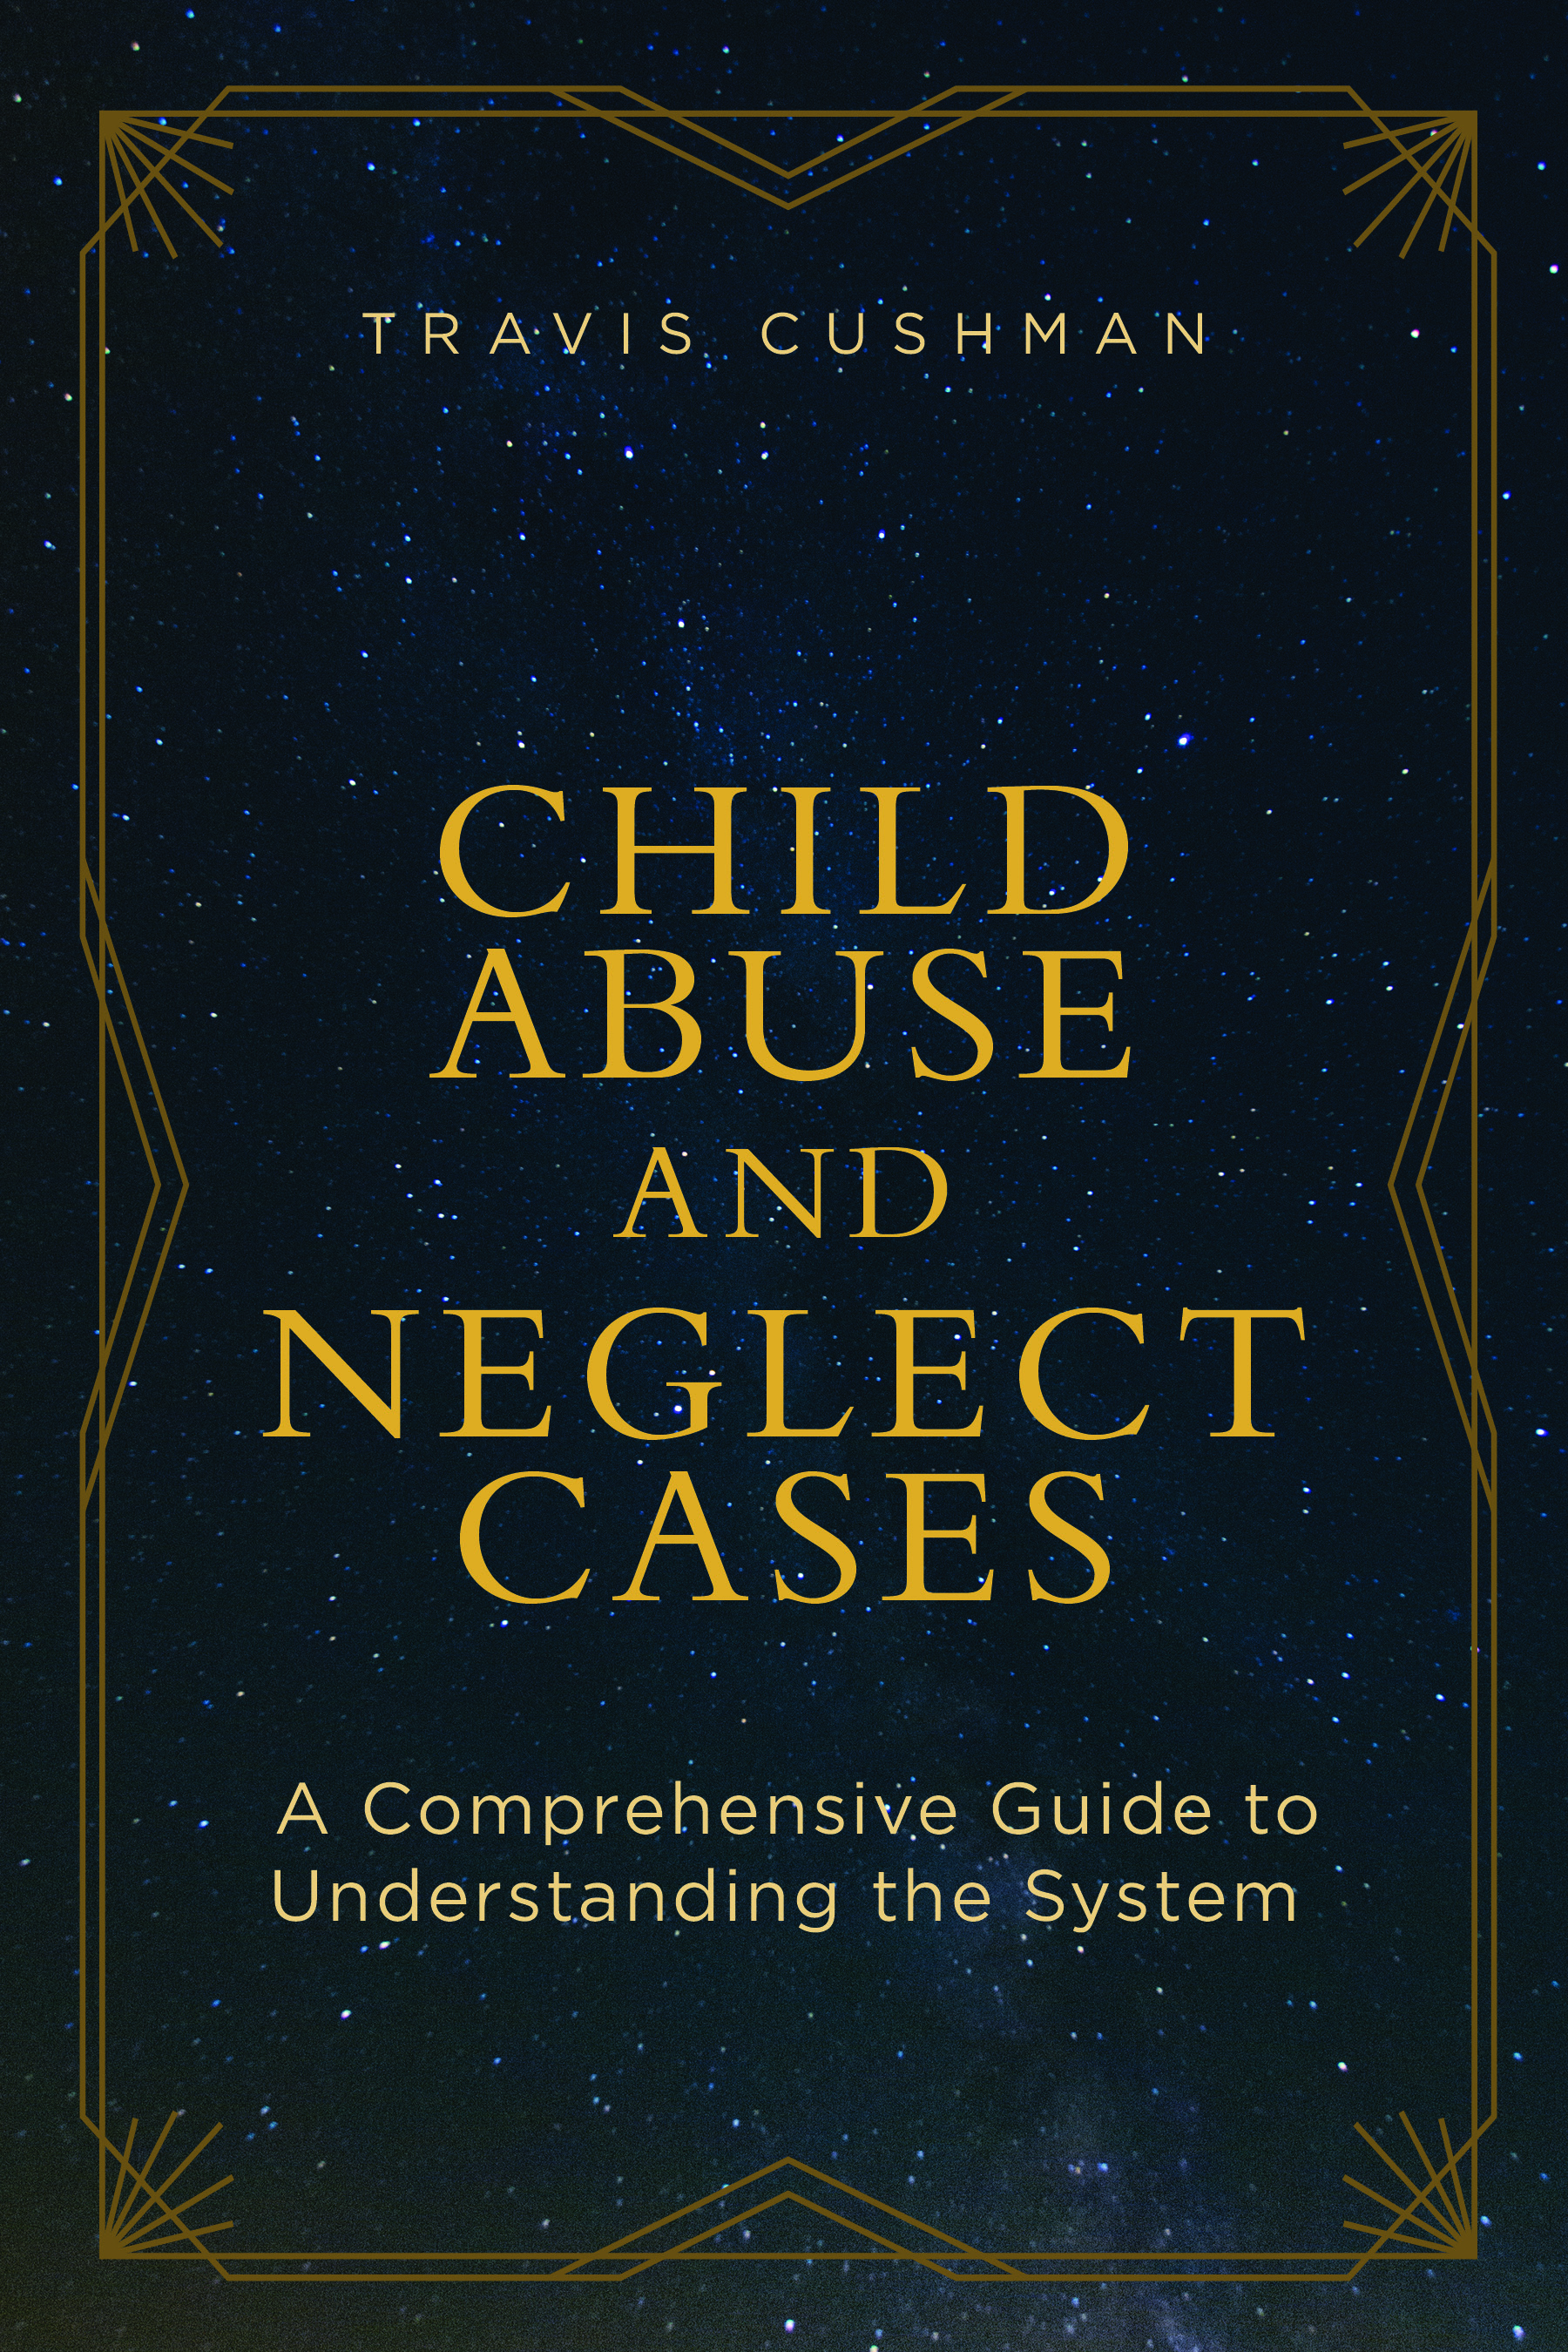 Child Abuse and Neglect Cases: A Comprehensive Guide to Understanding the System